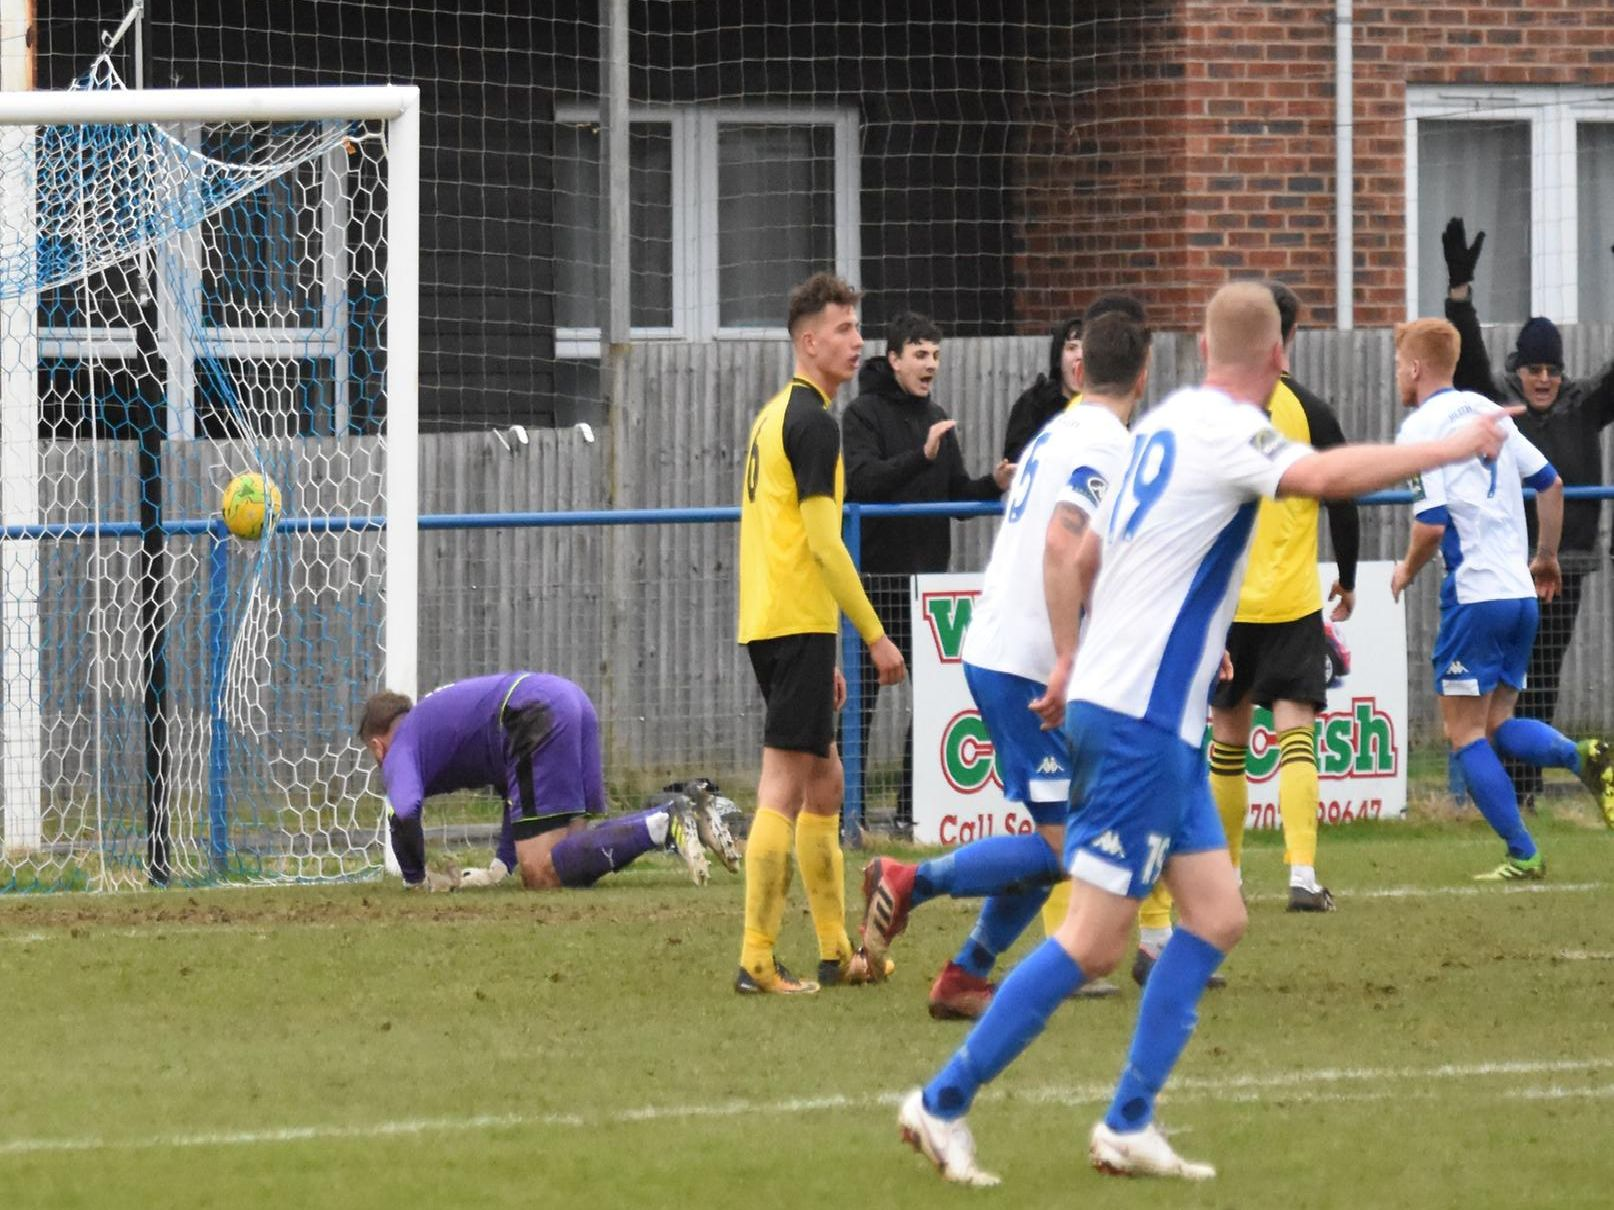 Alex Laing's header nestles in the net.